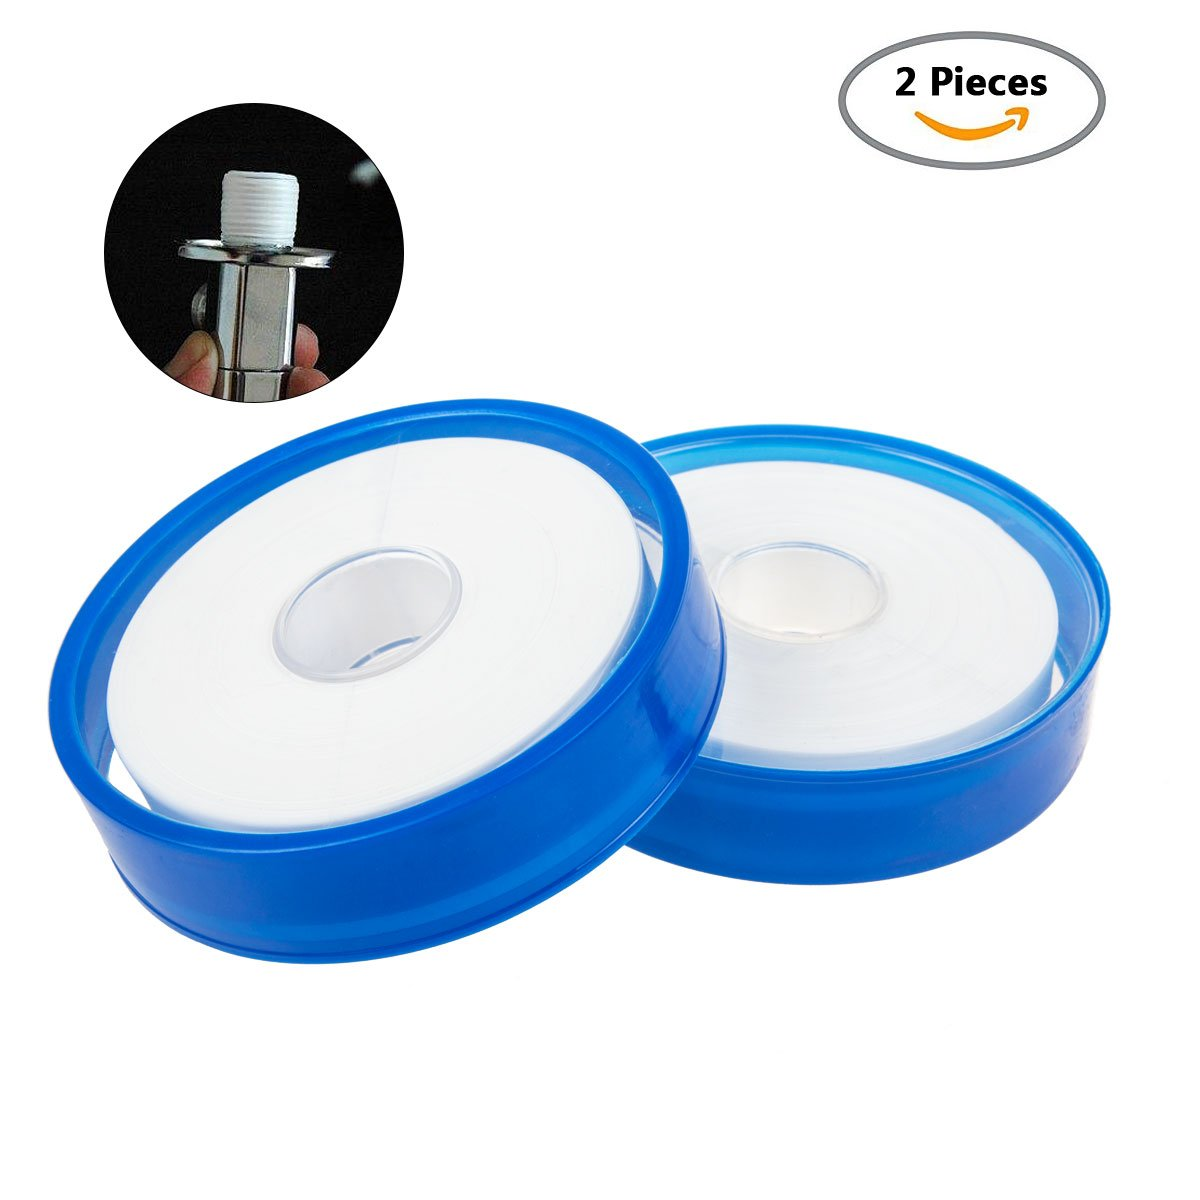 PTFE Thread Seal Tape, STARVAST Industrial Seal Teflon Gas Line Seal Tape For Fuel Lines, Leaky Water Pipe (328 Fts Length, 0.79 Inch Width, 2 Rolls White)